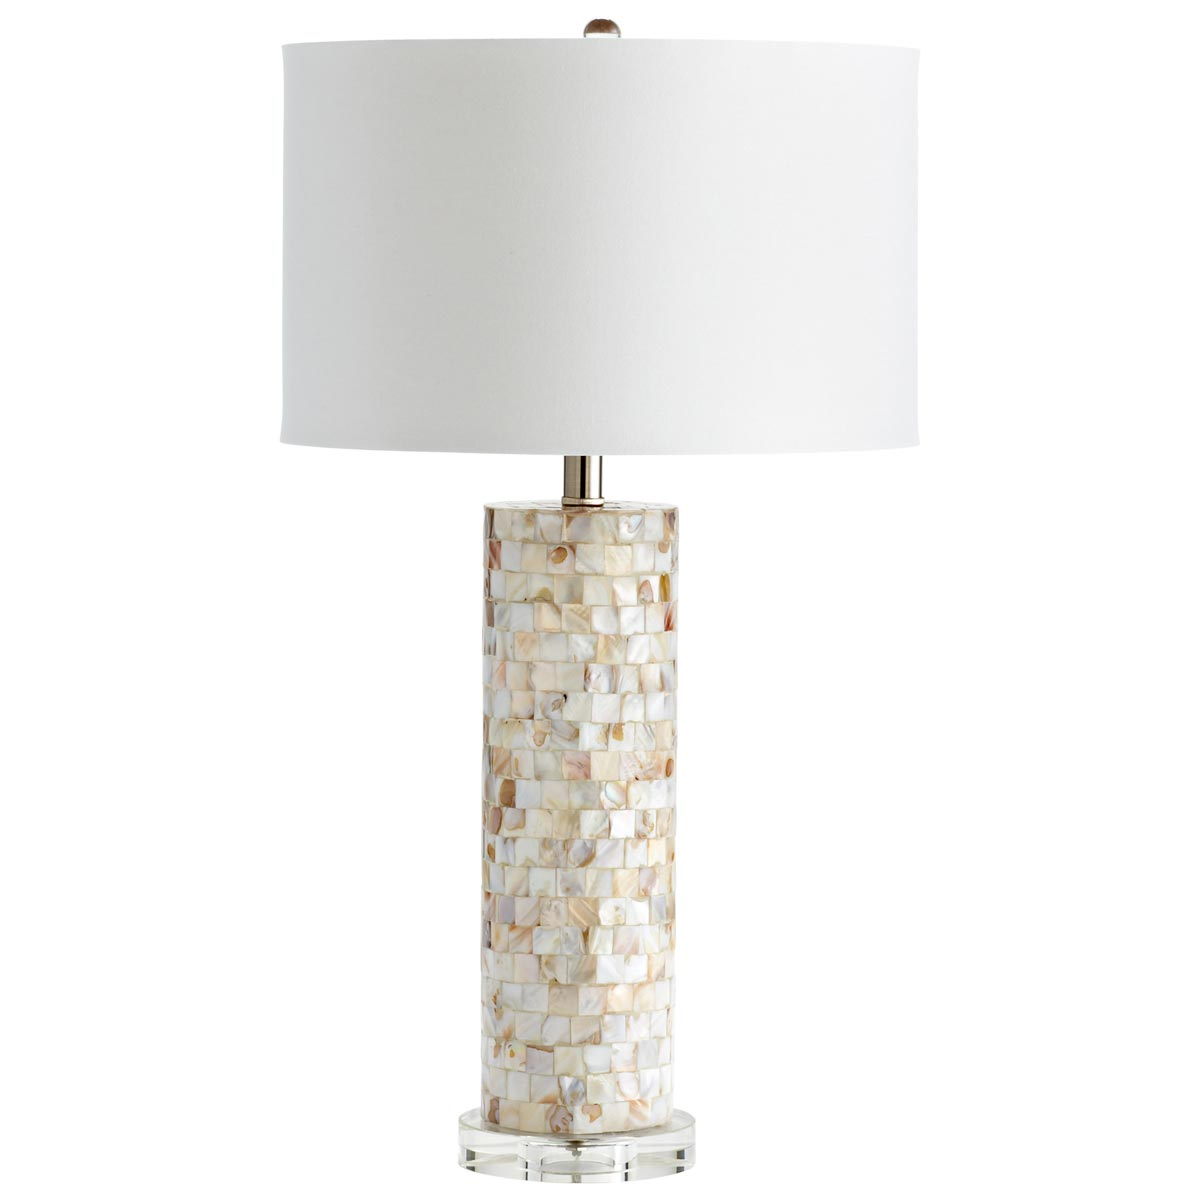 mother of pearl table lamps photo - 1